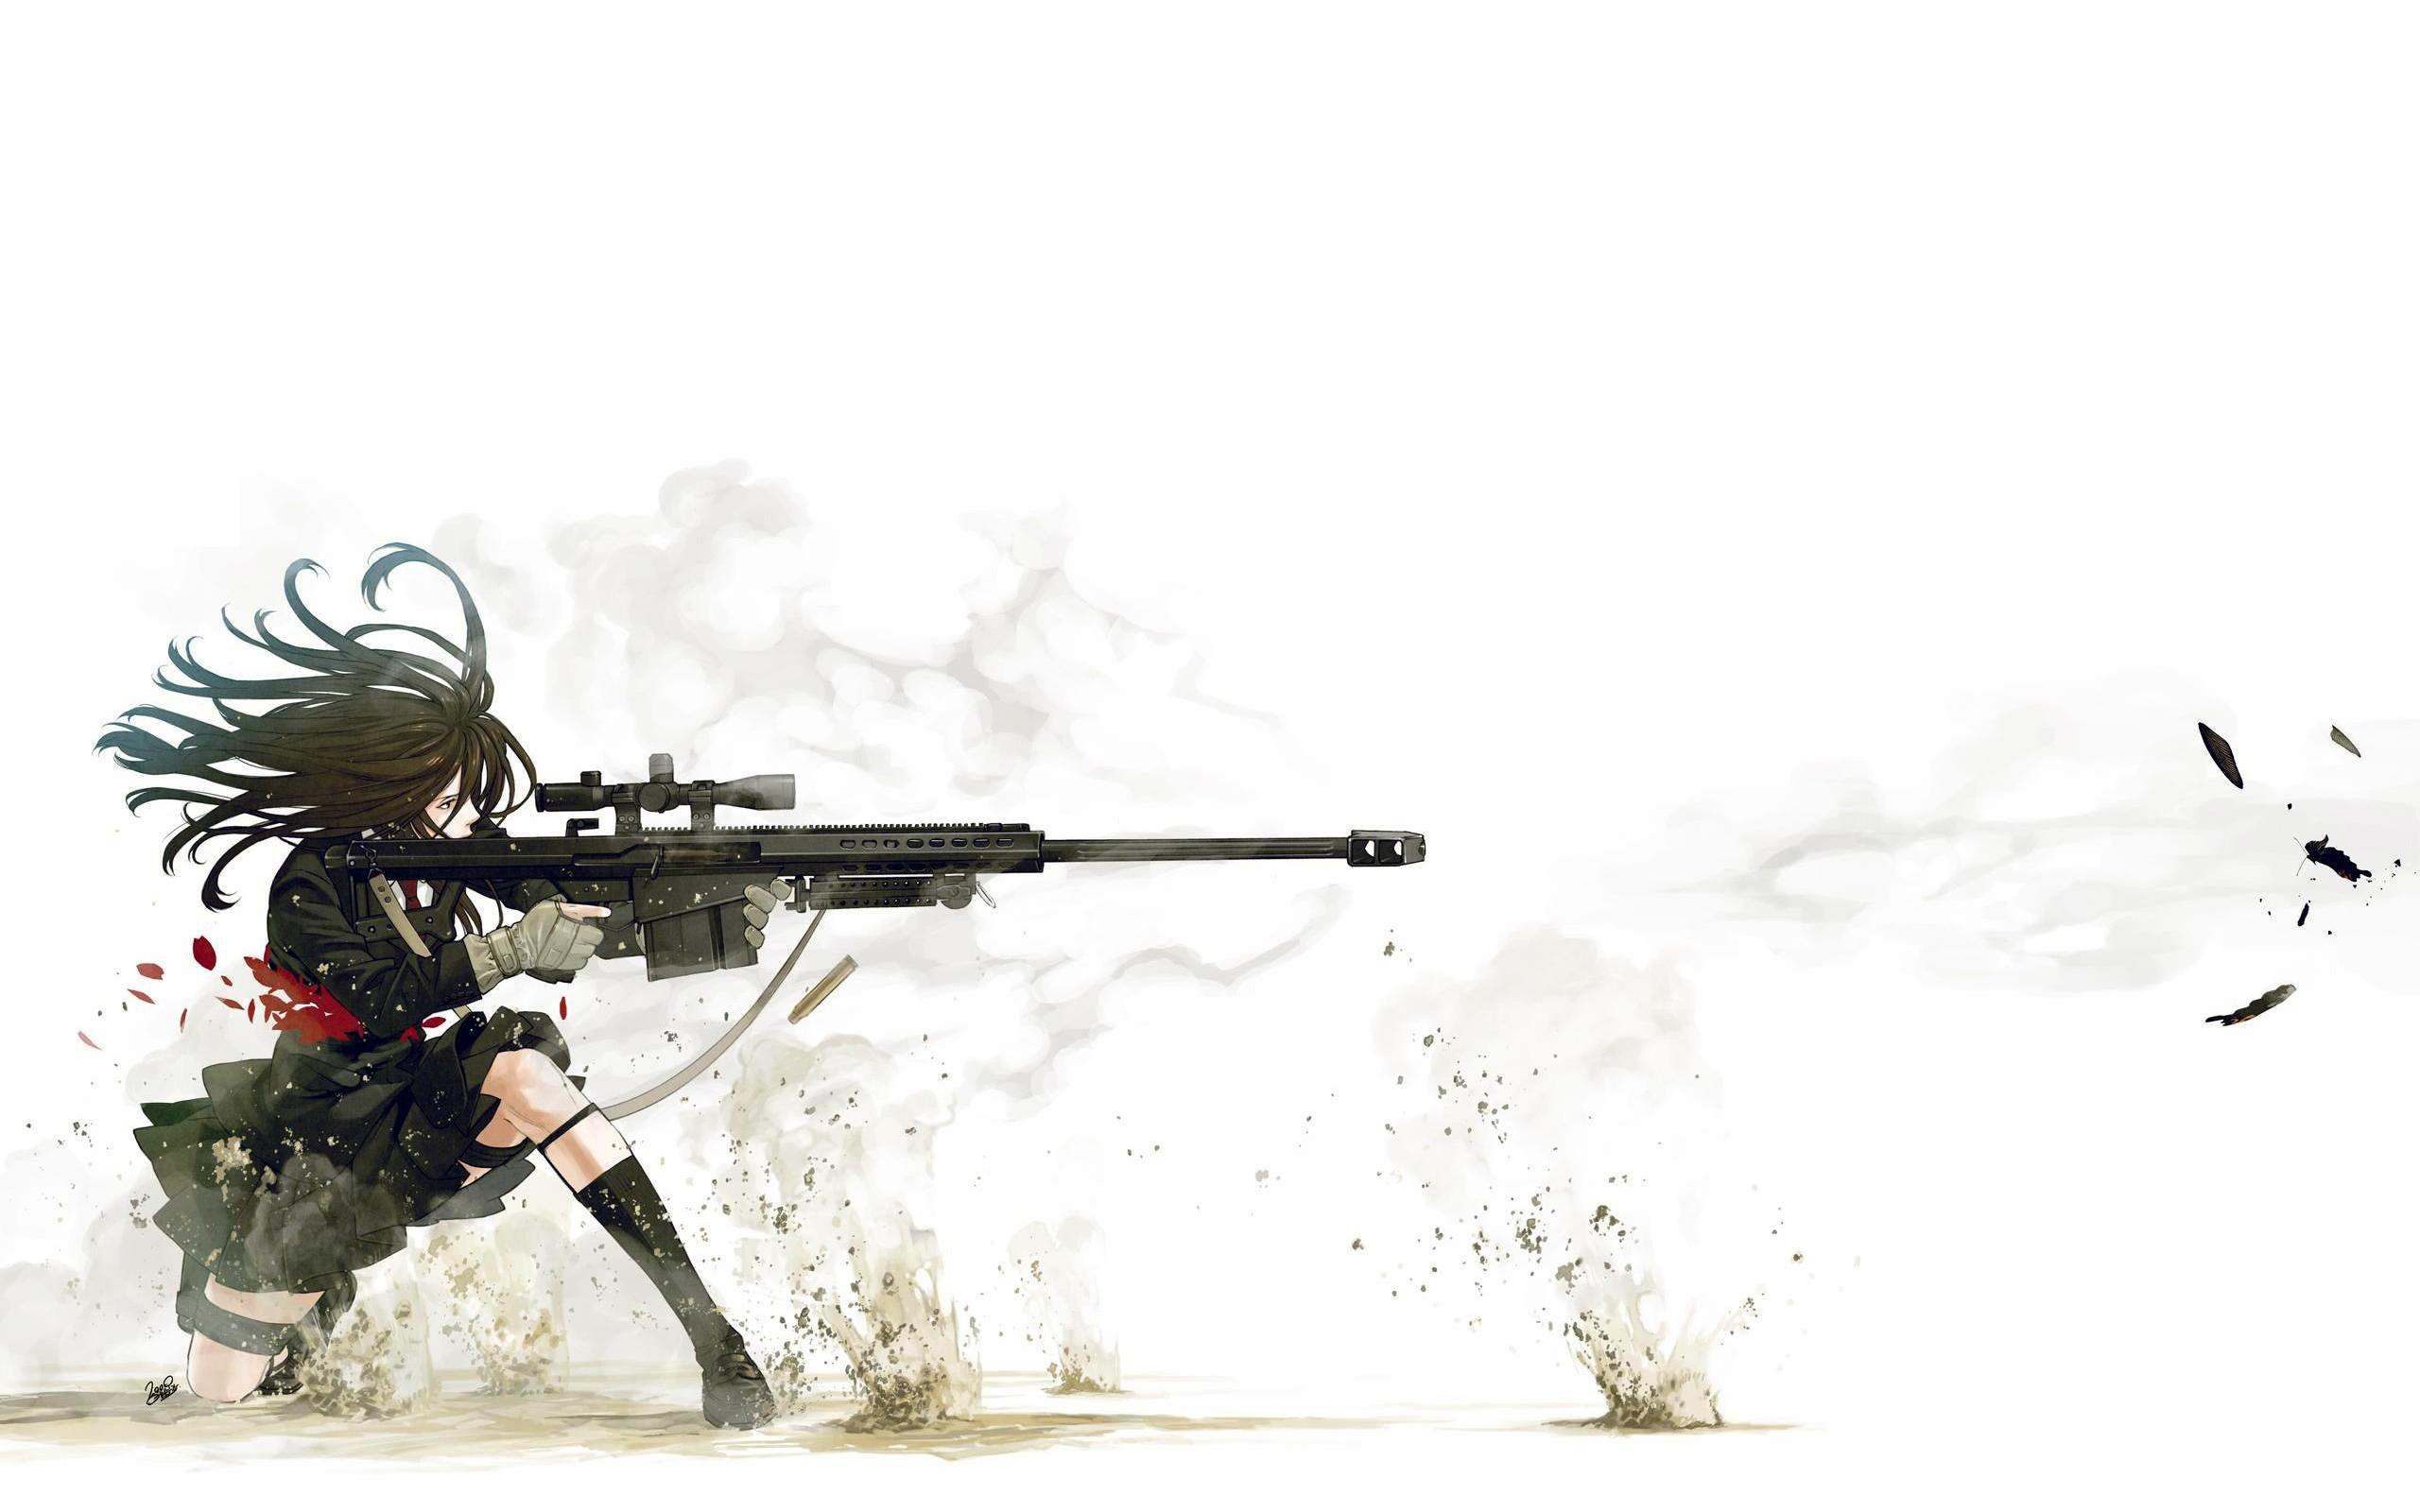 Anime Sniper HD Wallpapers - Wallpaper Cave